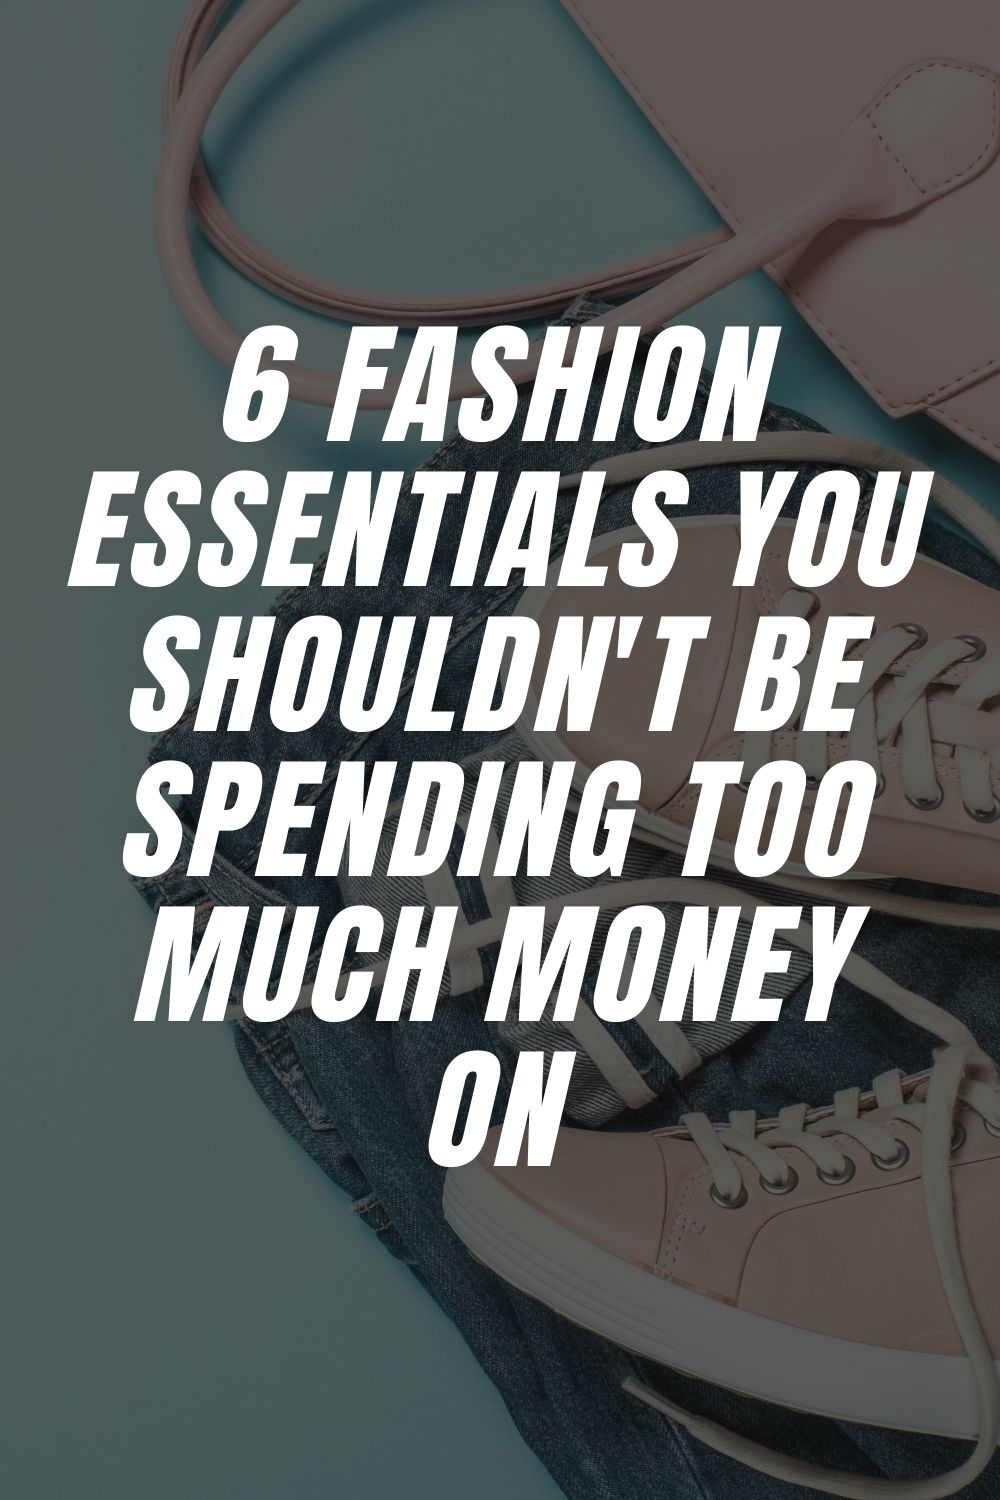 6 Fashion Essentials You Shouldn't Be Spending Too Much Money On